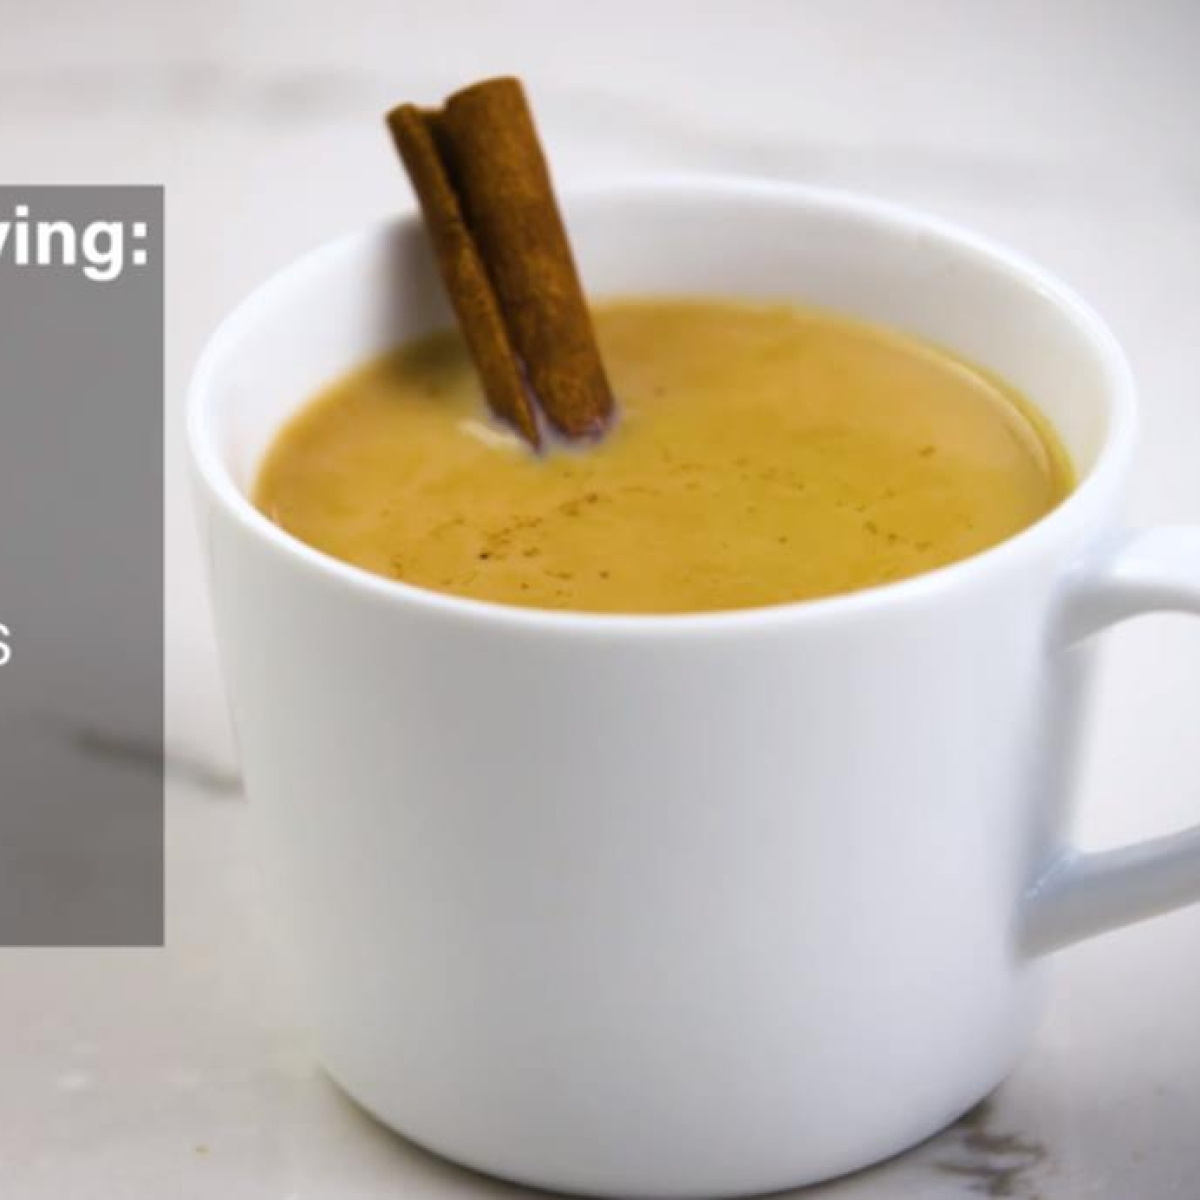 'Add rice and it will be biryani': Tea lovers lock horns over WebMD's 'chai latte' recipe